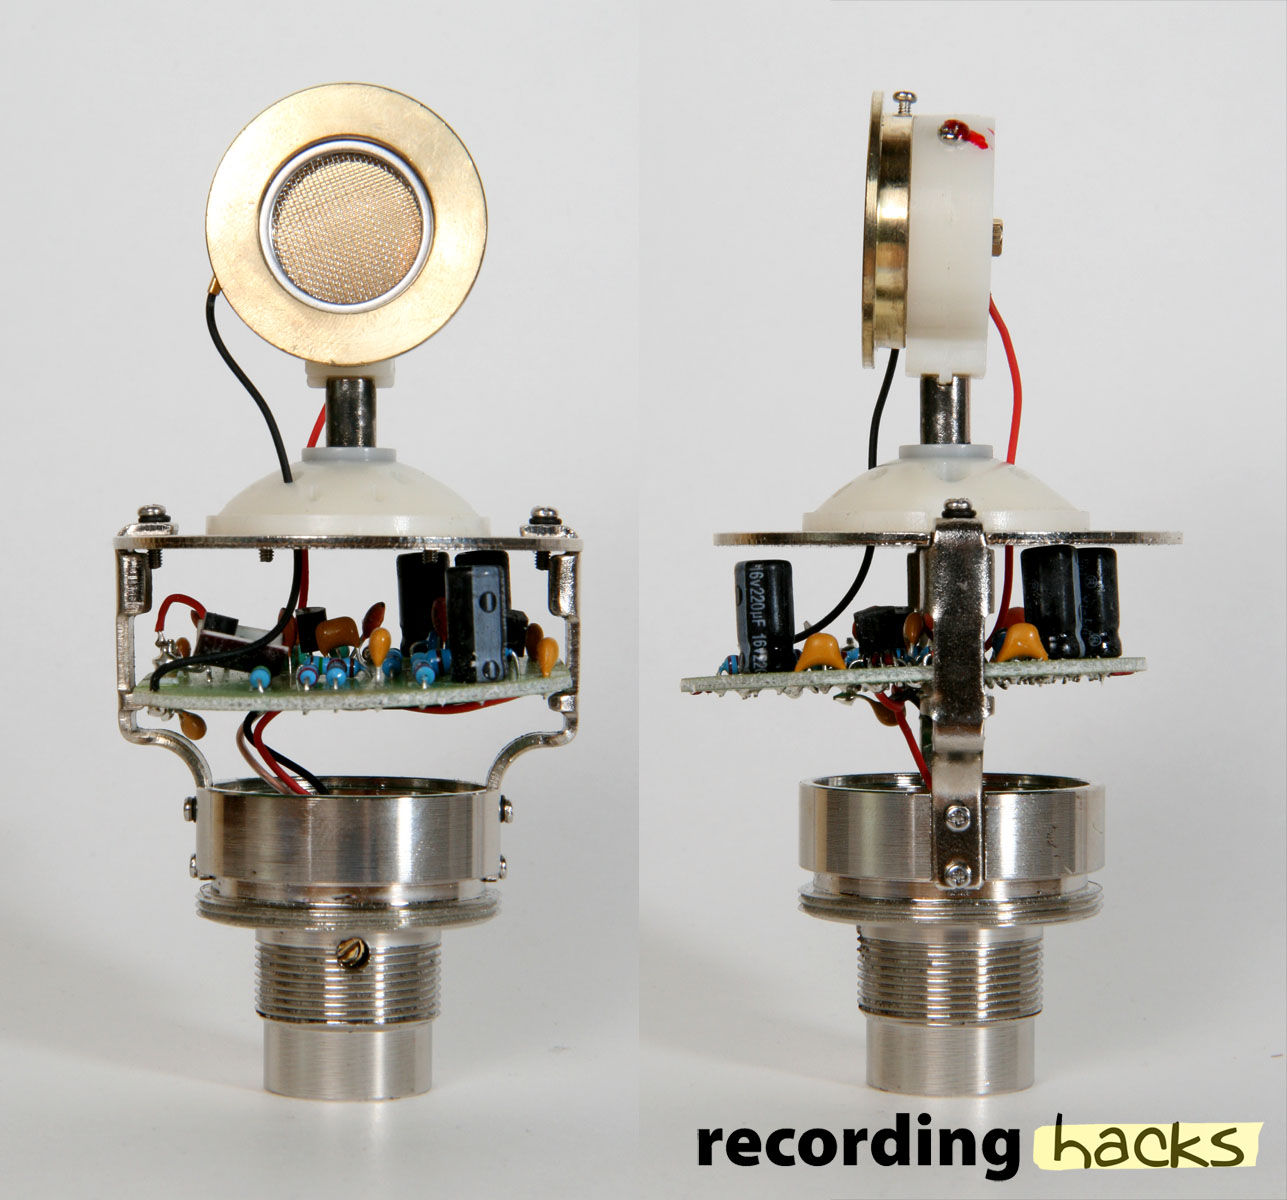 MXL 990 | RecordingHacks.com